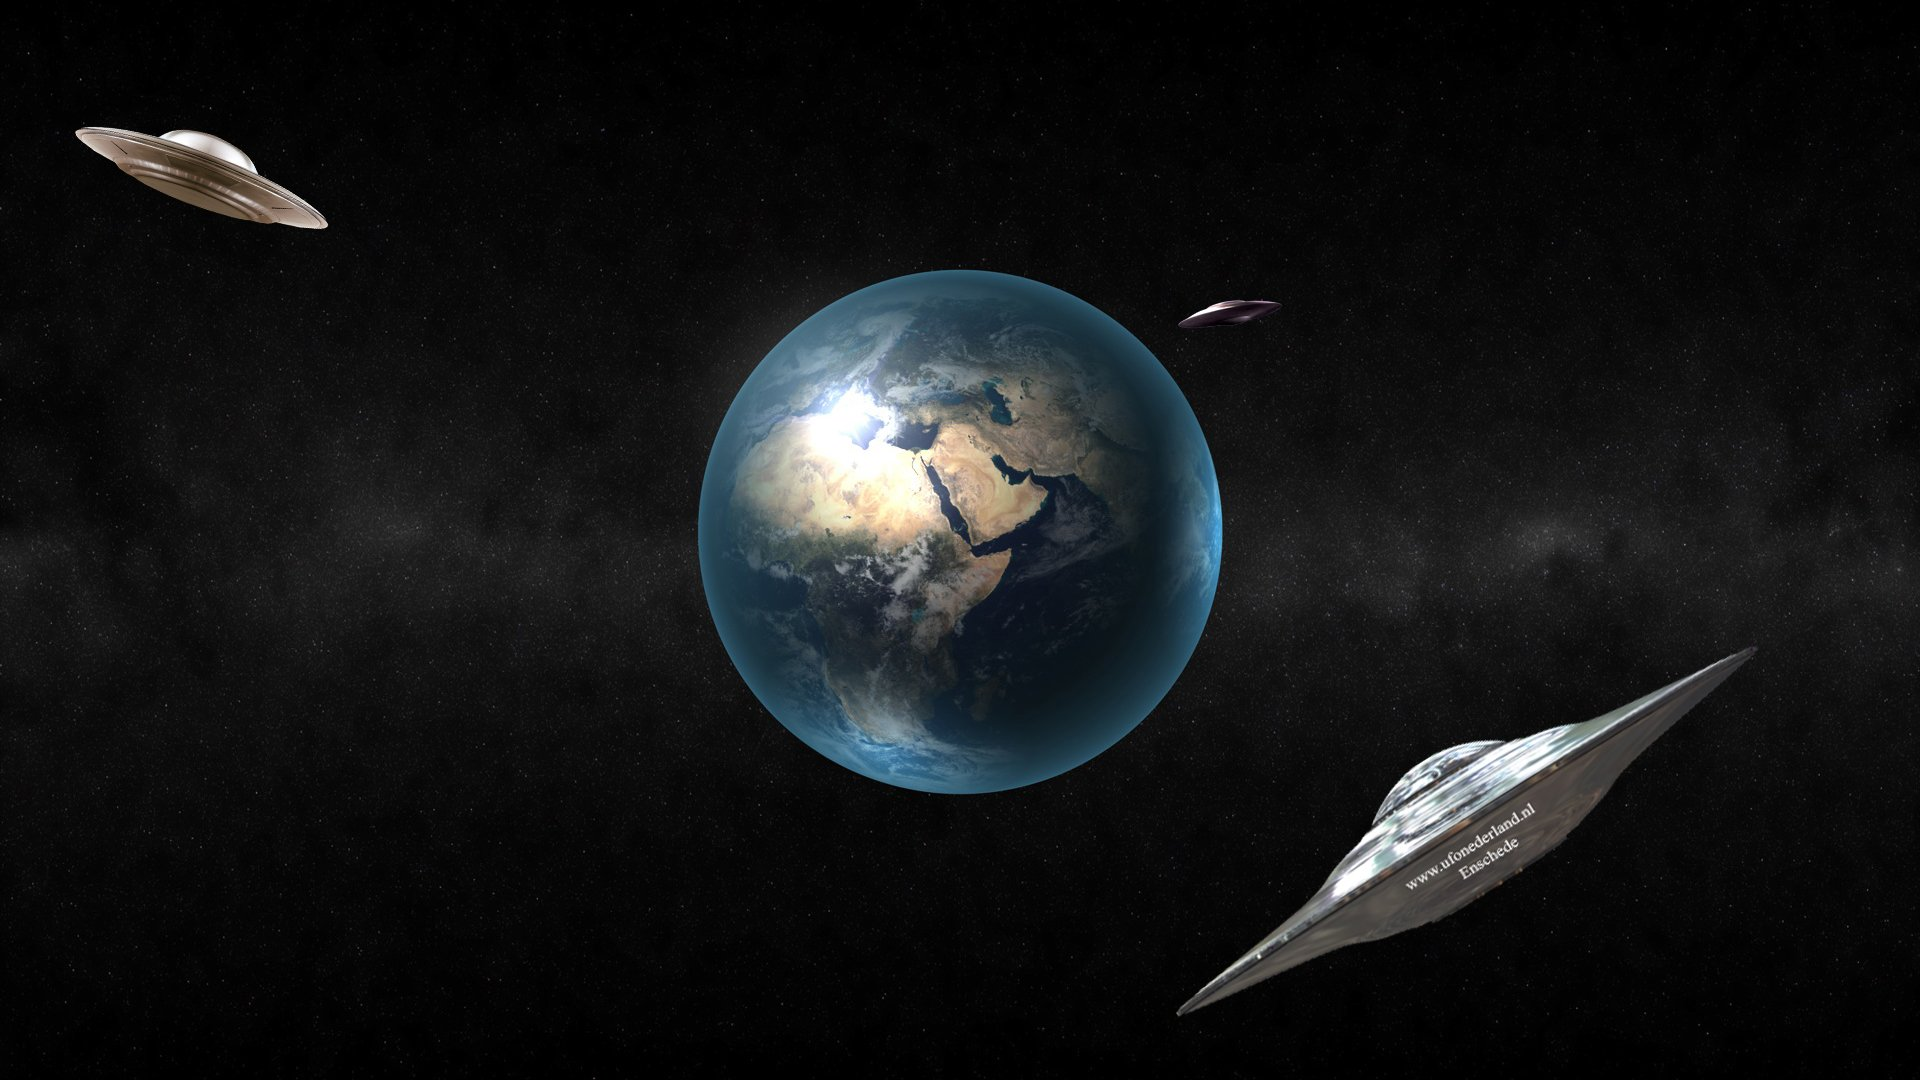 UFO Wallpaper HD - WallpaperSafari for Ufo Black Background  56bof